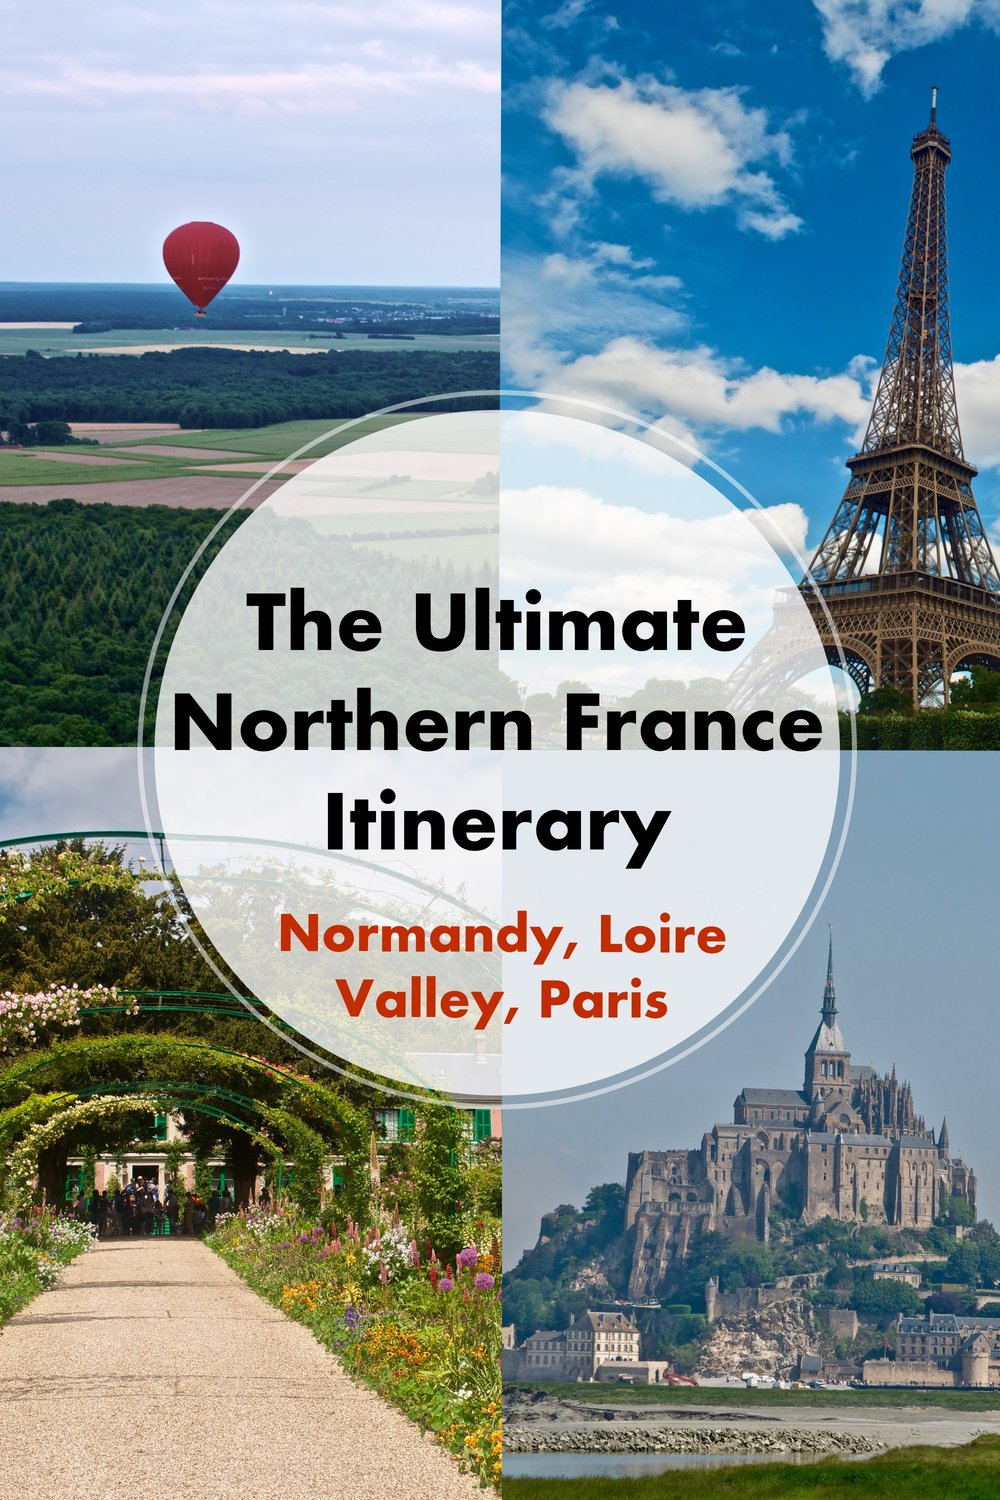 The Ultimate Northern France Itinerary: Normandy, Loire Valley, Paris - A Happy Passport #france #loirevalley #Paris #normandy #travel #europe